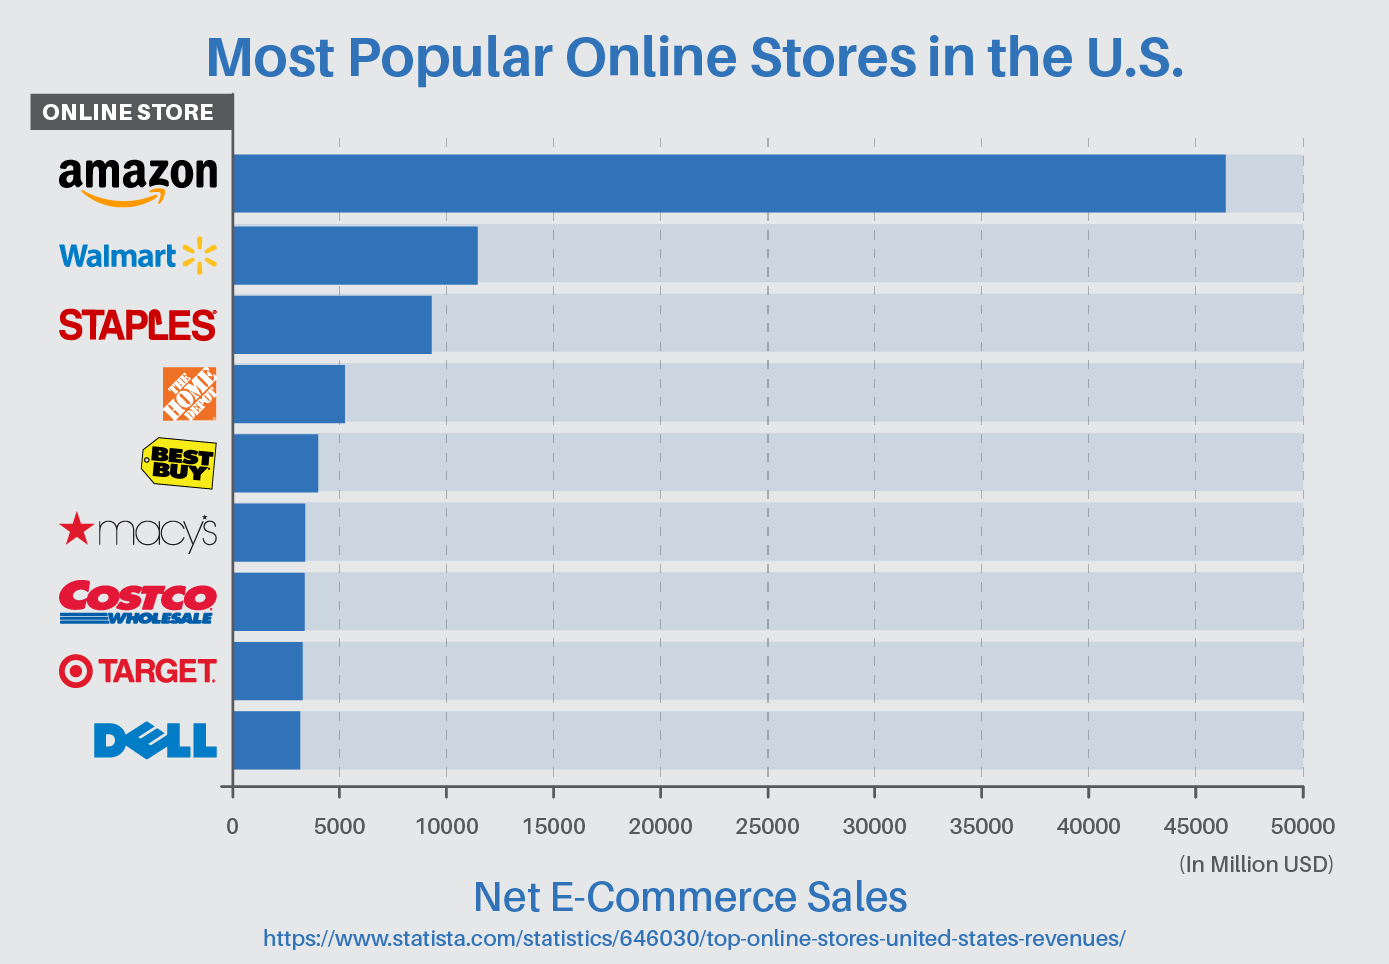 Most popular online stores in the U.S.